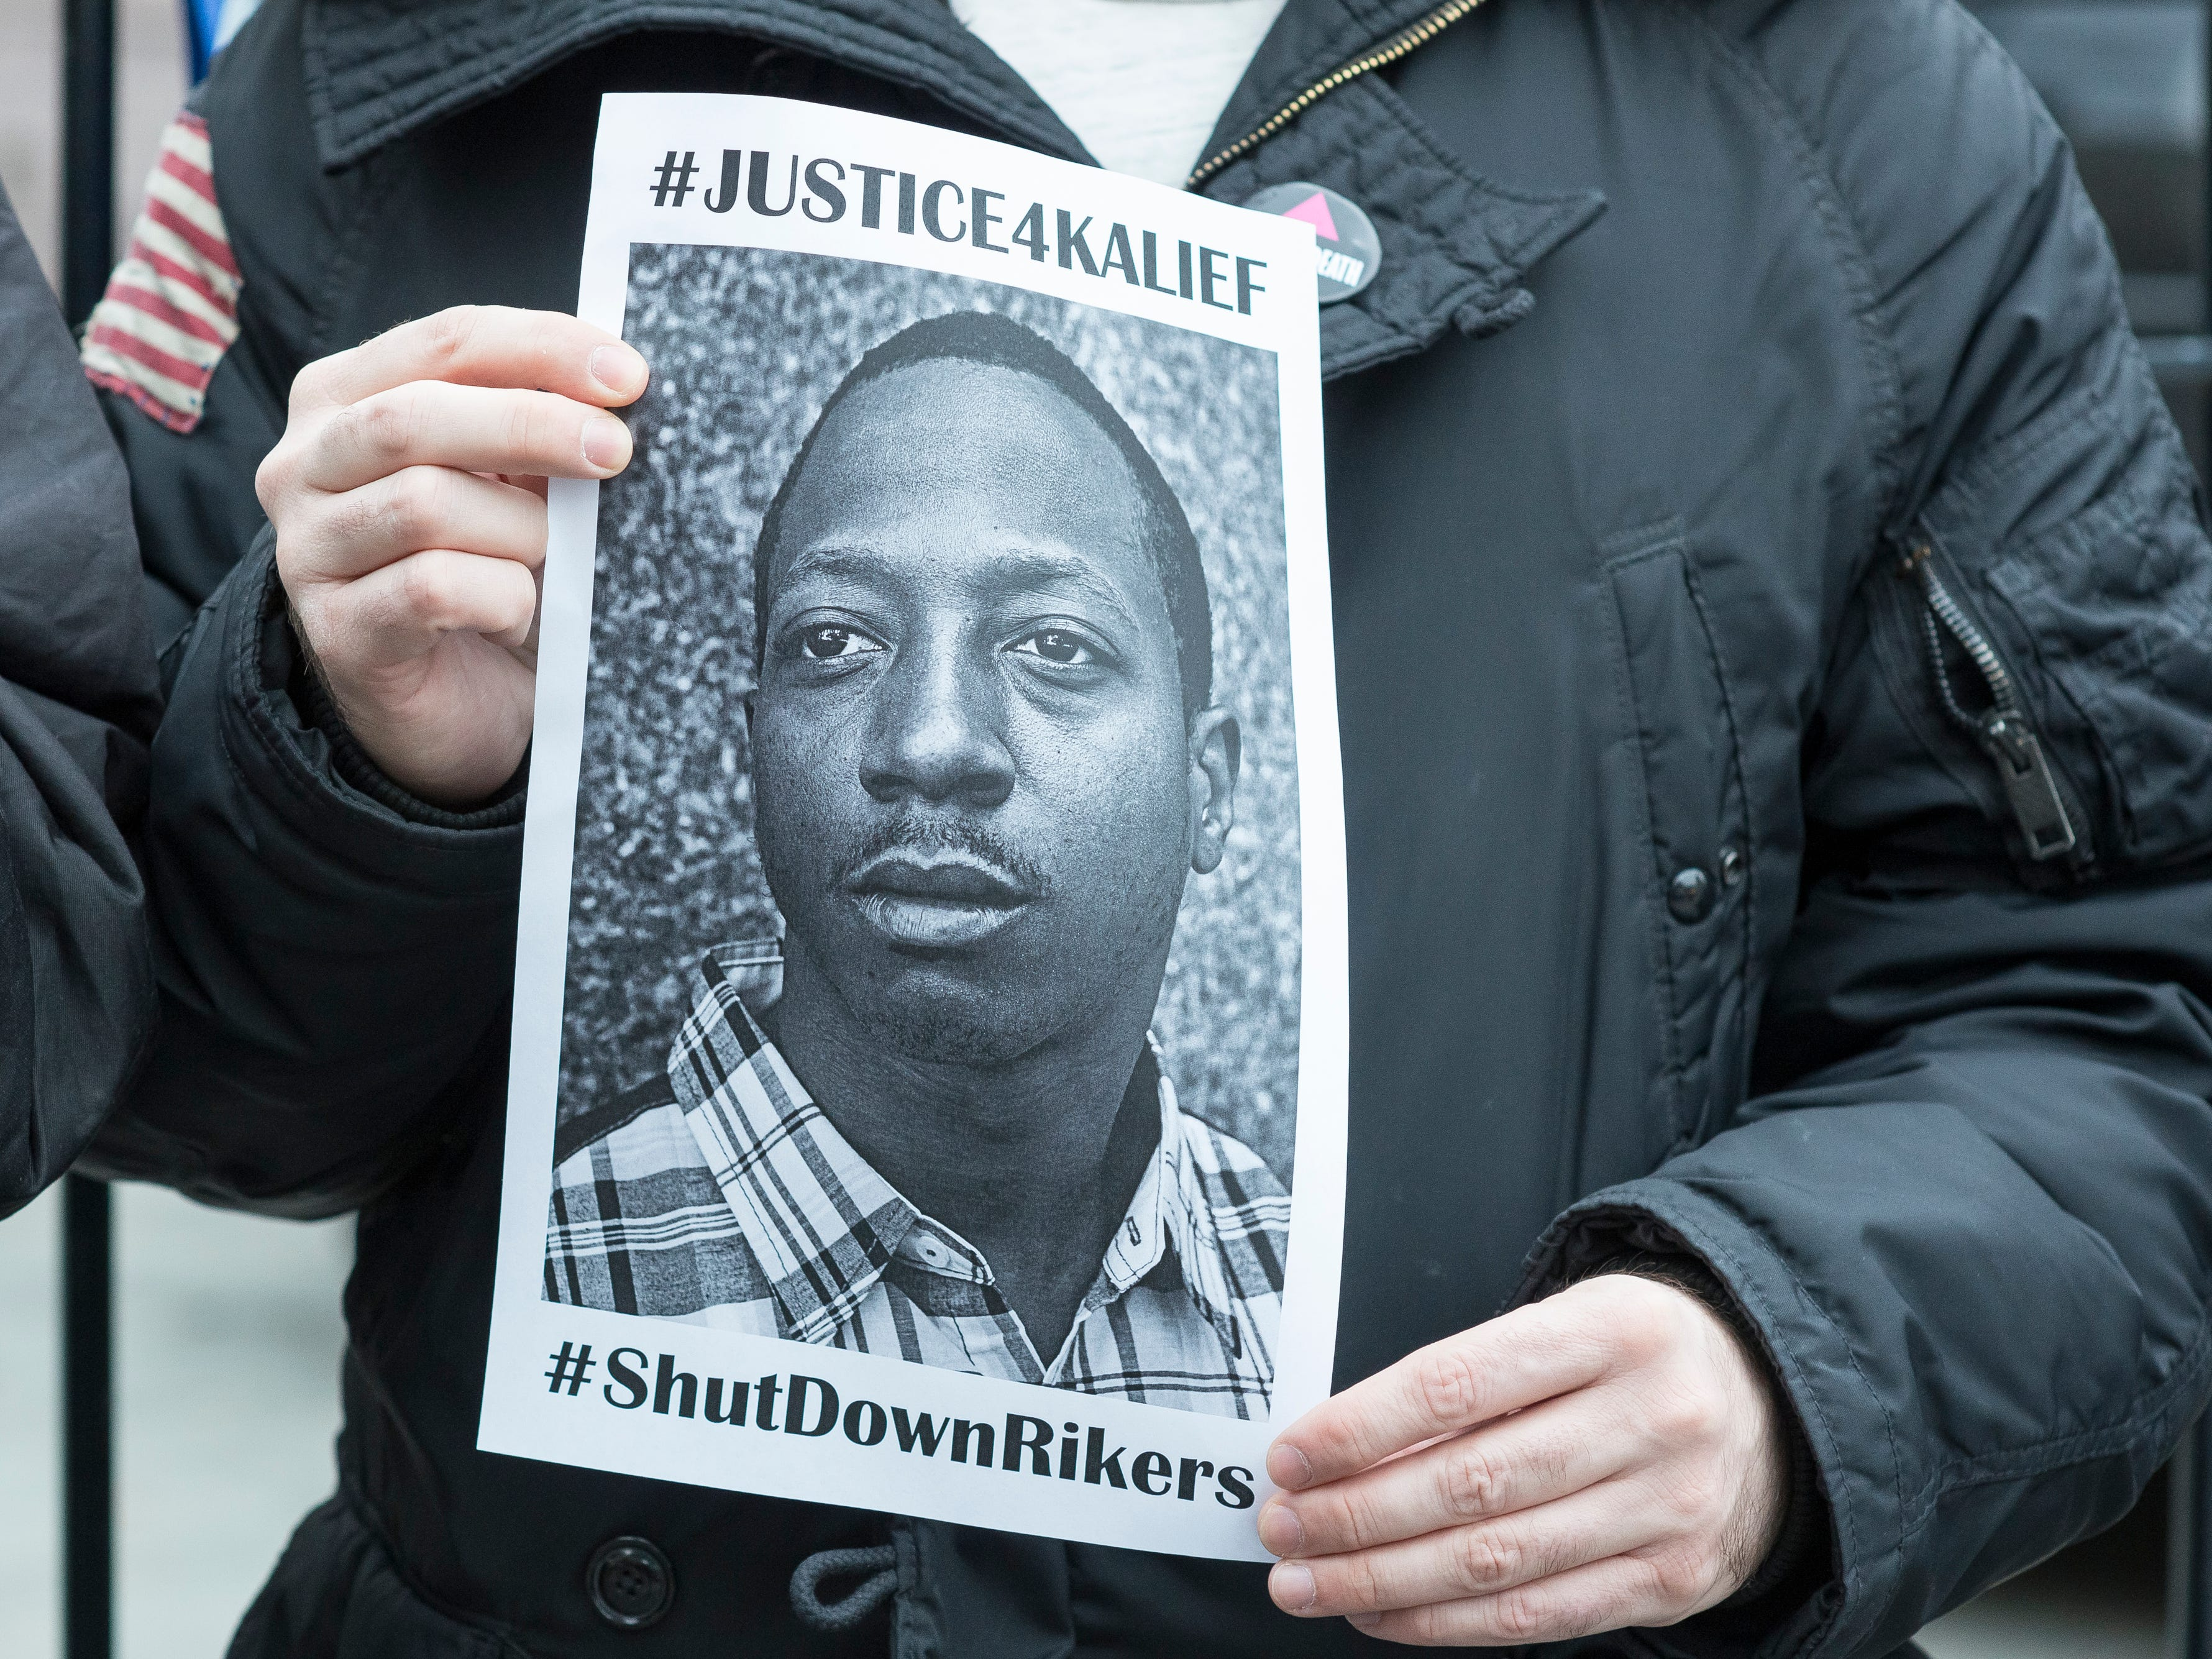 A demonstrator holds an image of Kalief Browder at a protest near City Hall in New York City, NY, USA to demand that it close the long-controversial Rikers Island Corrections facility, on February 23, 2016. (Photo by Albin Lohr-Jones) *** Please Use Credit from Credit Field *** [Via MerlinFTP Drop]